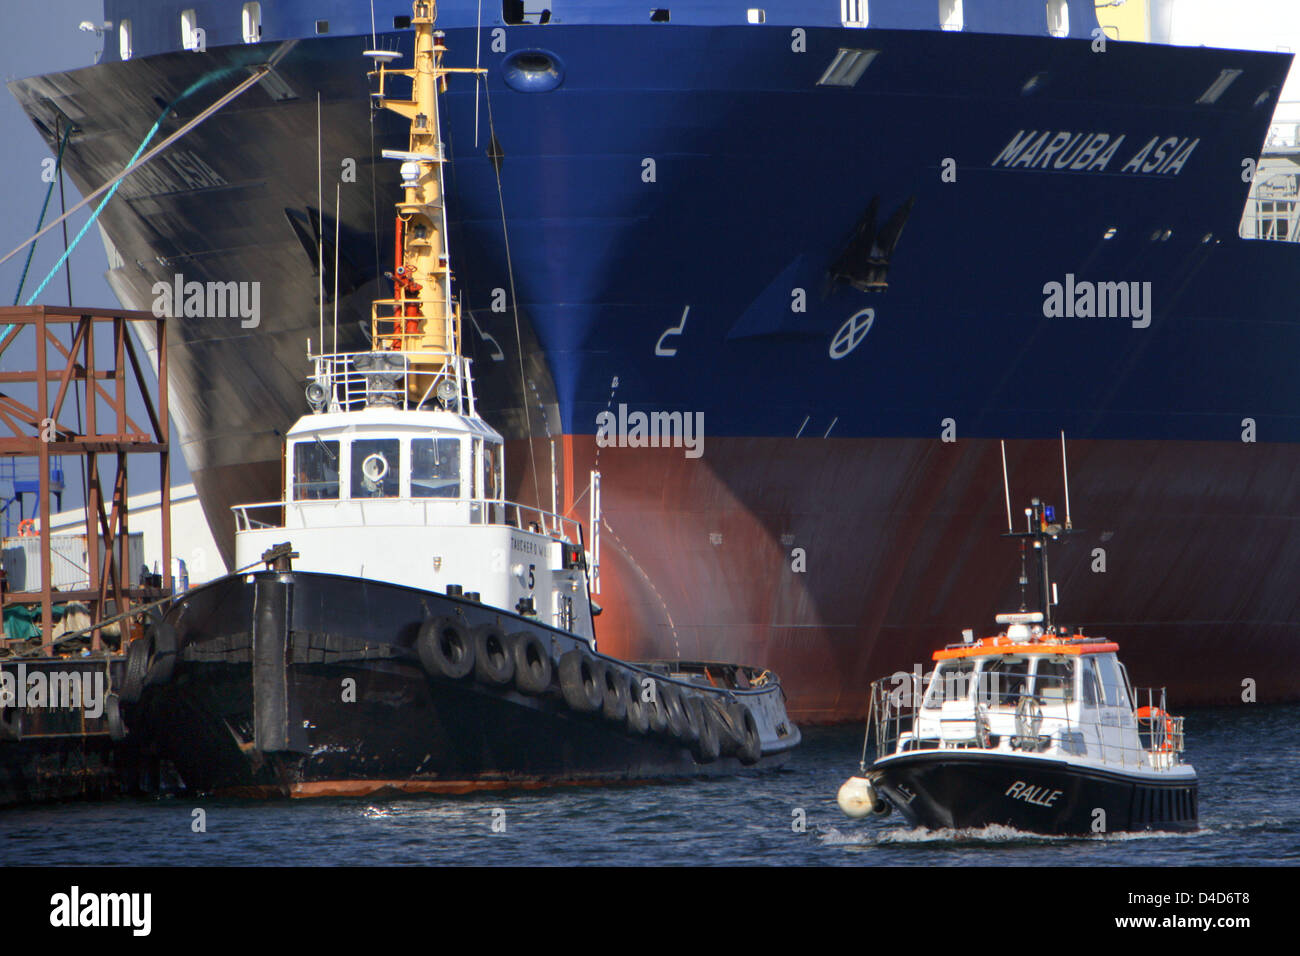 View on container vessel Aker CS 2100 'Maruba Asia' in the southern harbour of Wismar, Germany, 10 March - Stock Image